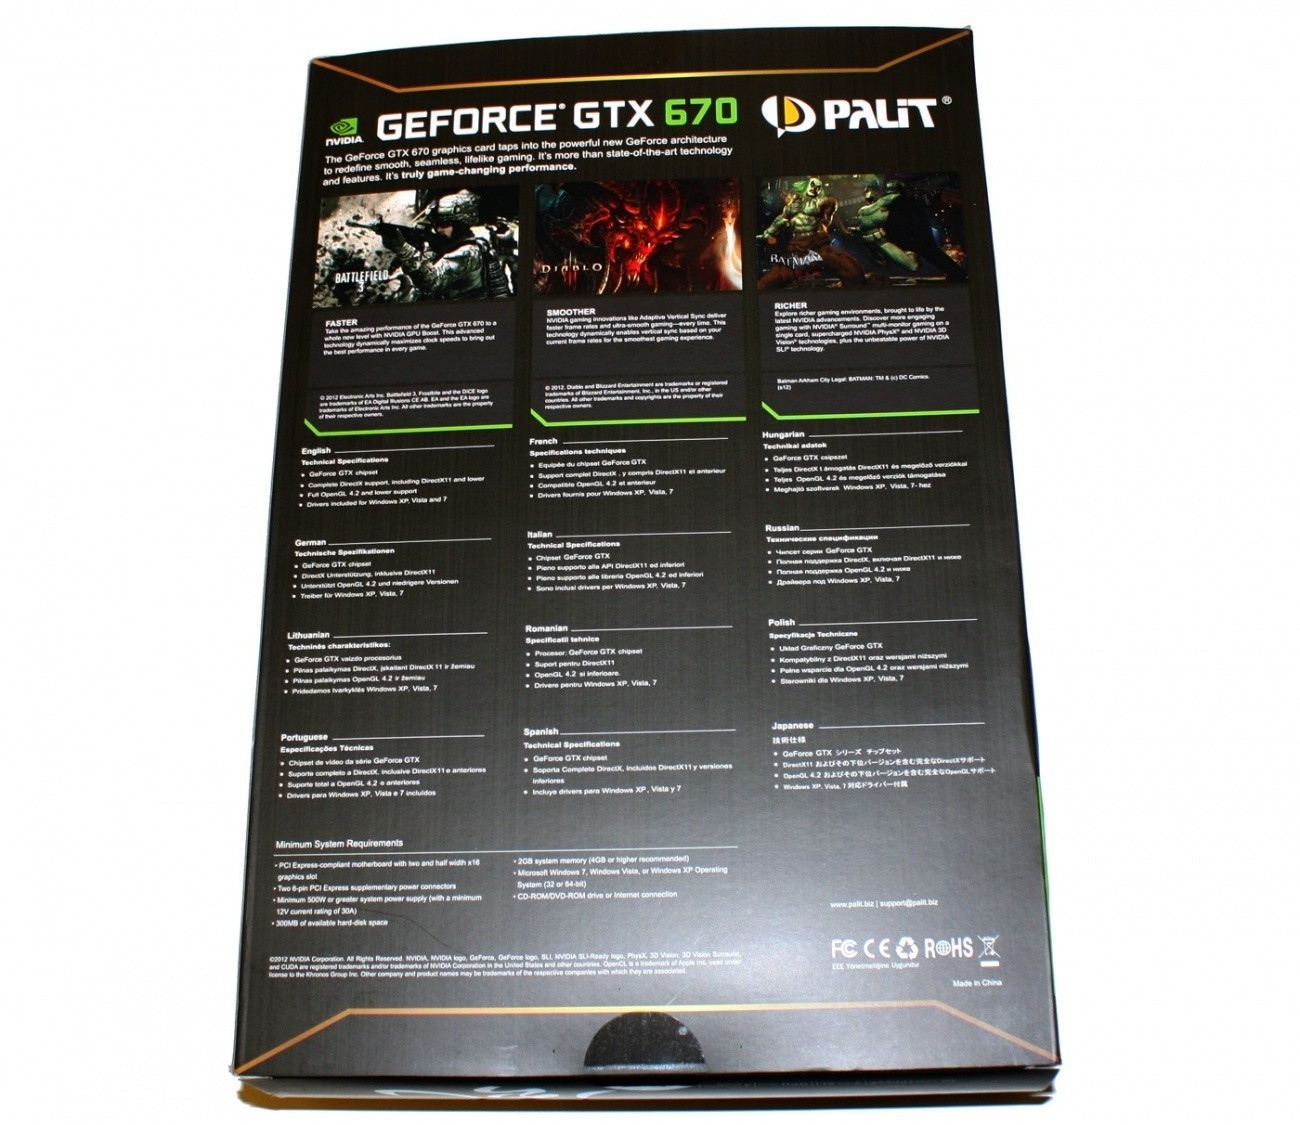 palit_jetstream_geforce_gtx_670_2gb_video_card_review